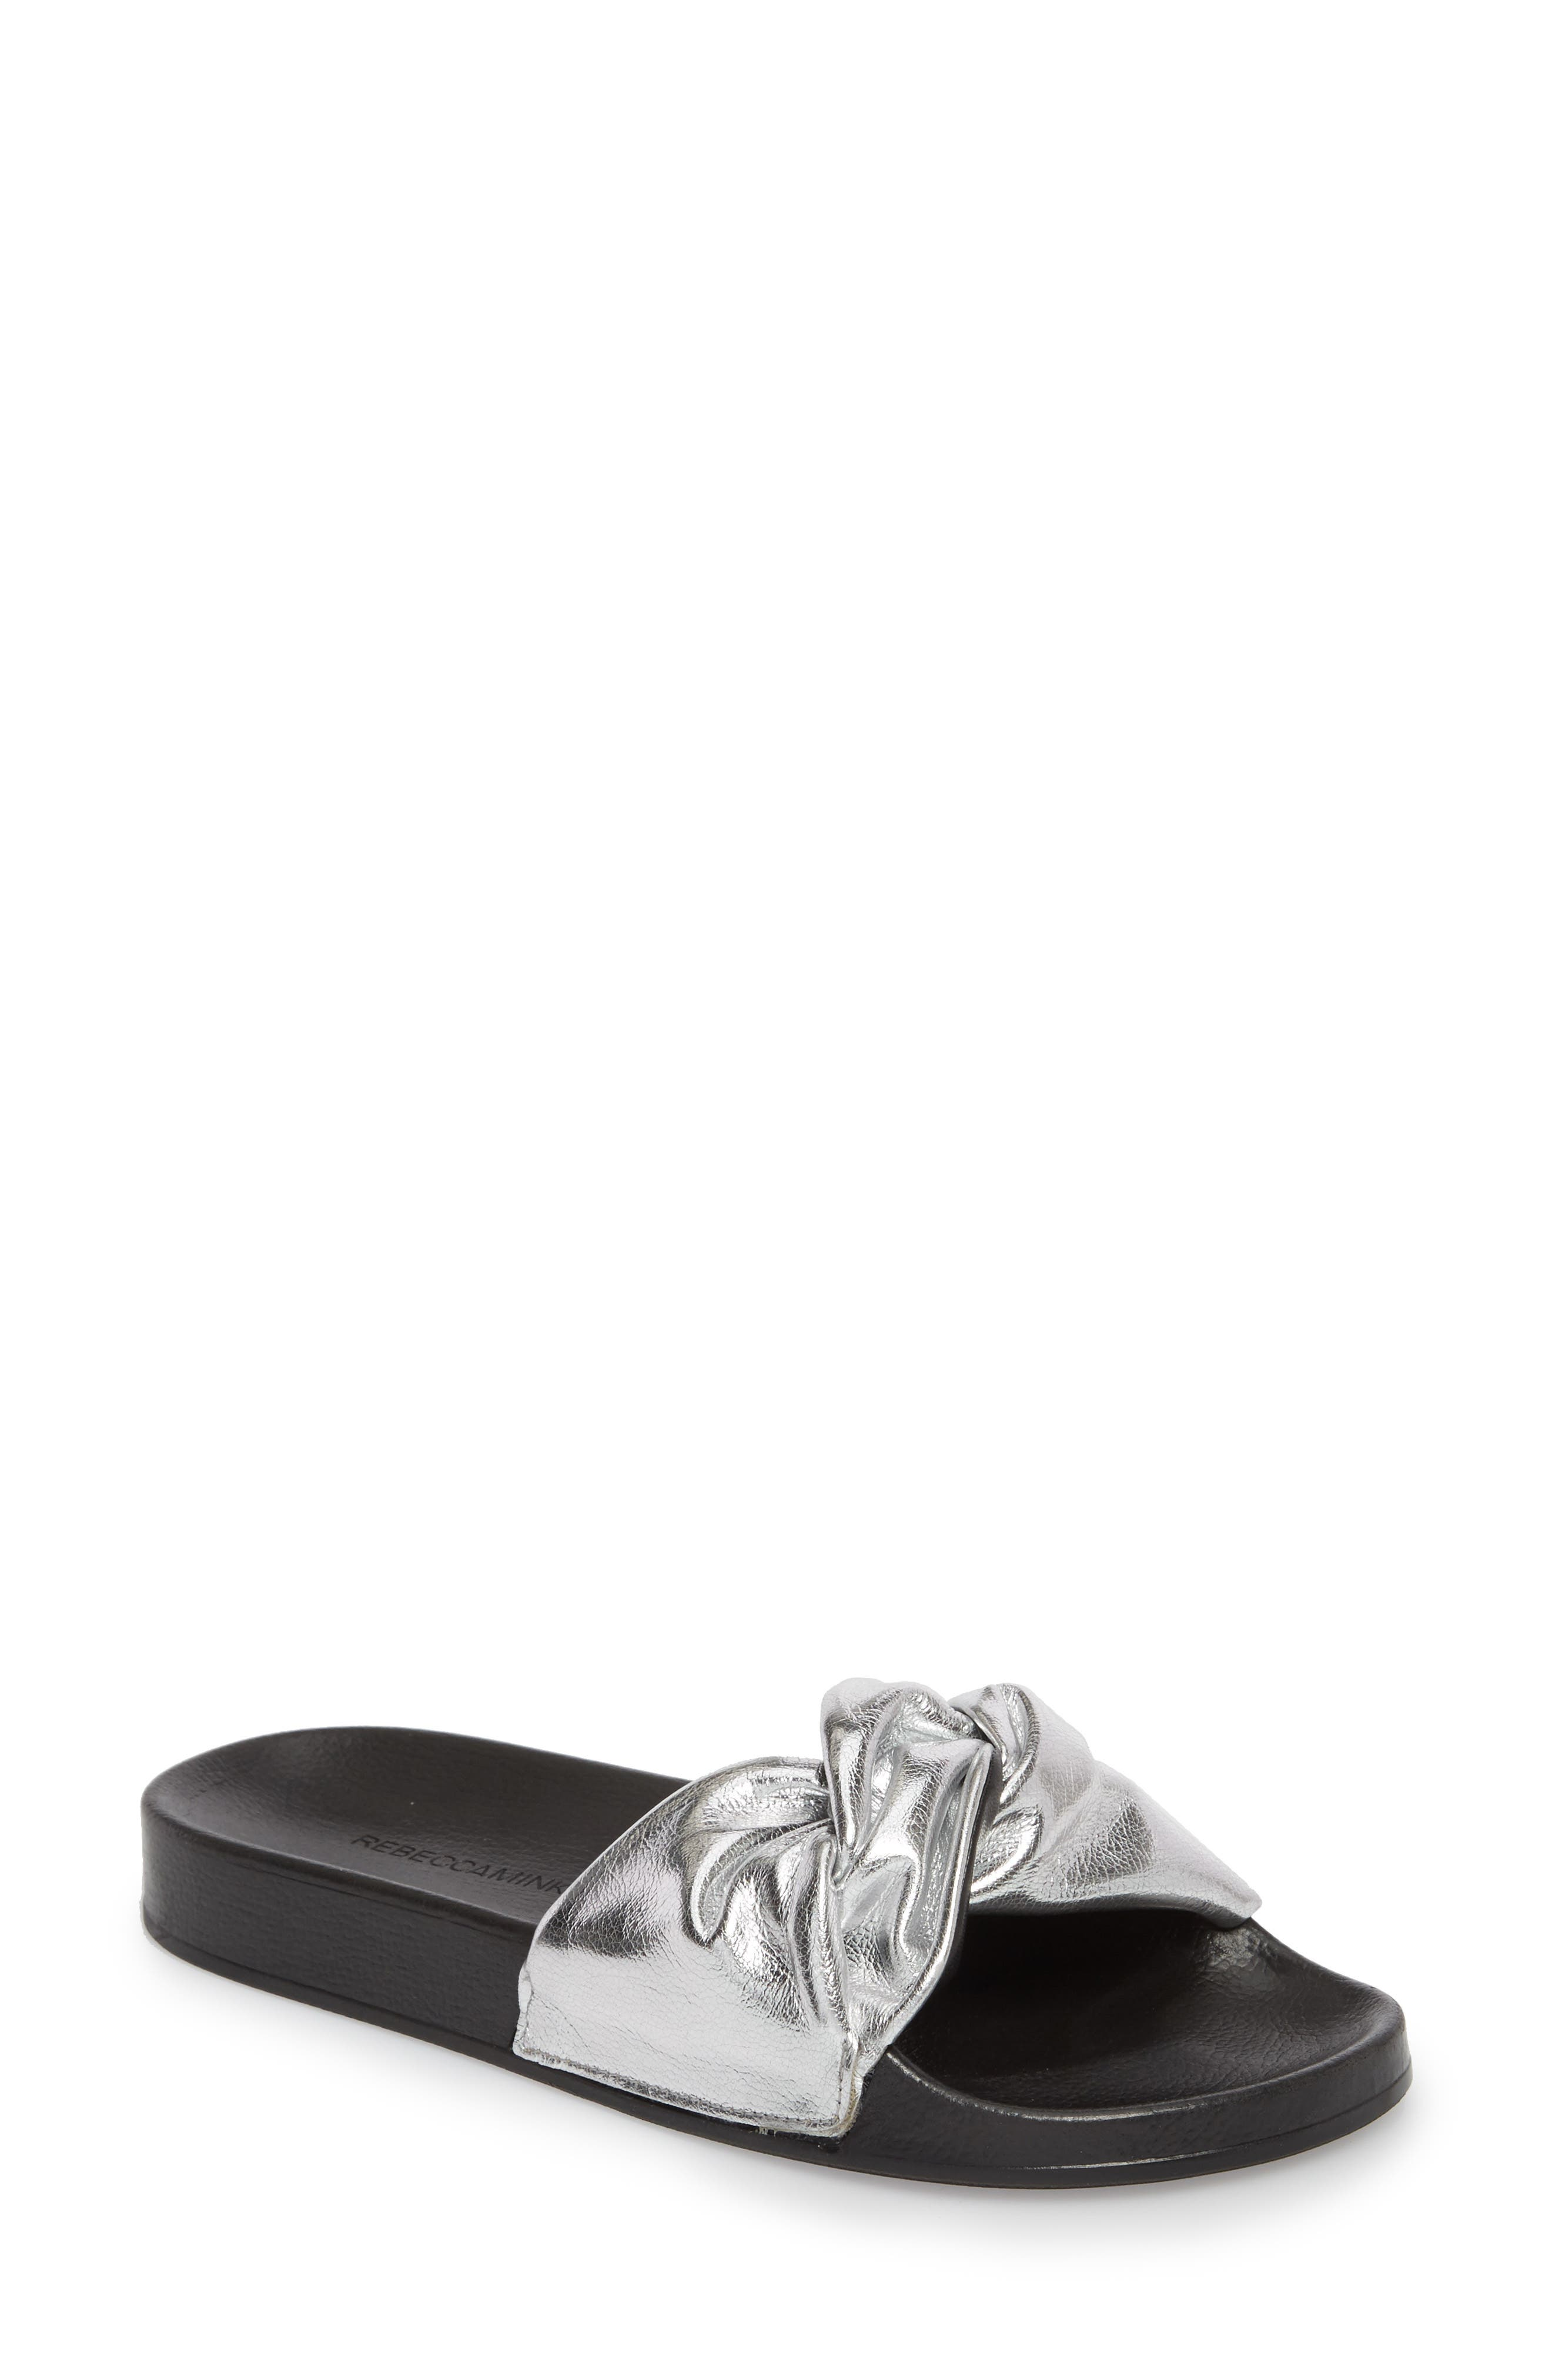 Samara Slide Sandal,                             Main thumbnail 1, color,                             040